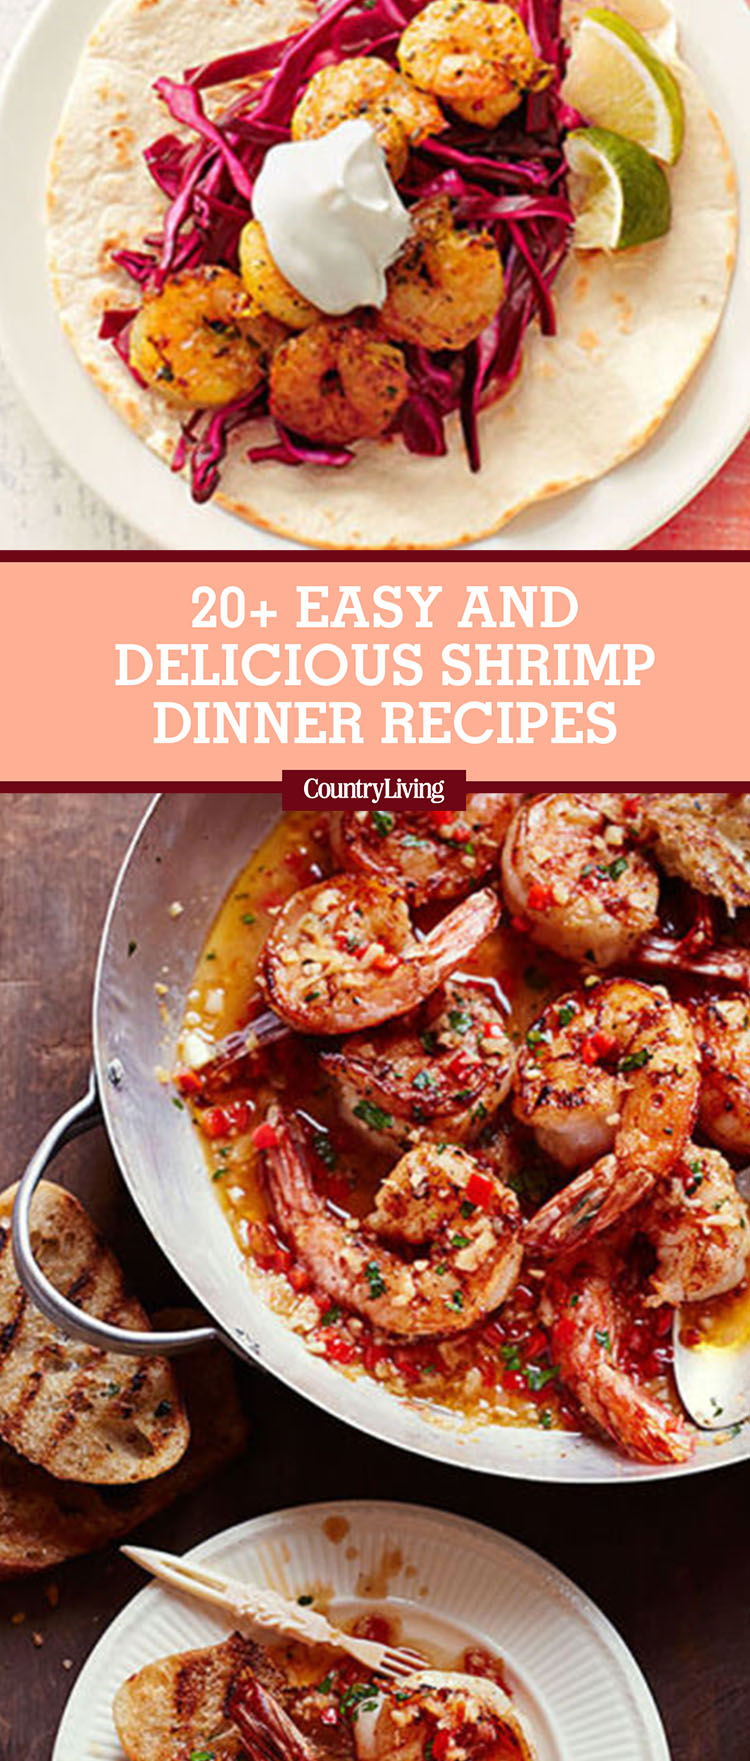 Sauteed shrimp braised with white wine and lime juice and seasoned with cilantro and cayenne pepper. Simple, quick and delicious. Serve with a grilled corn and salsa salad.